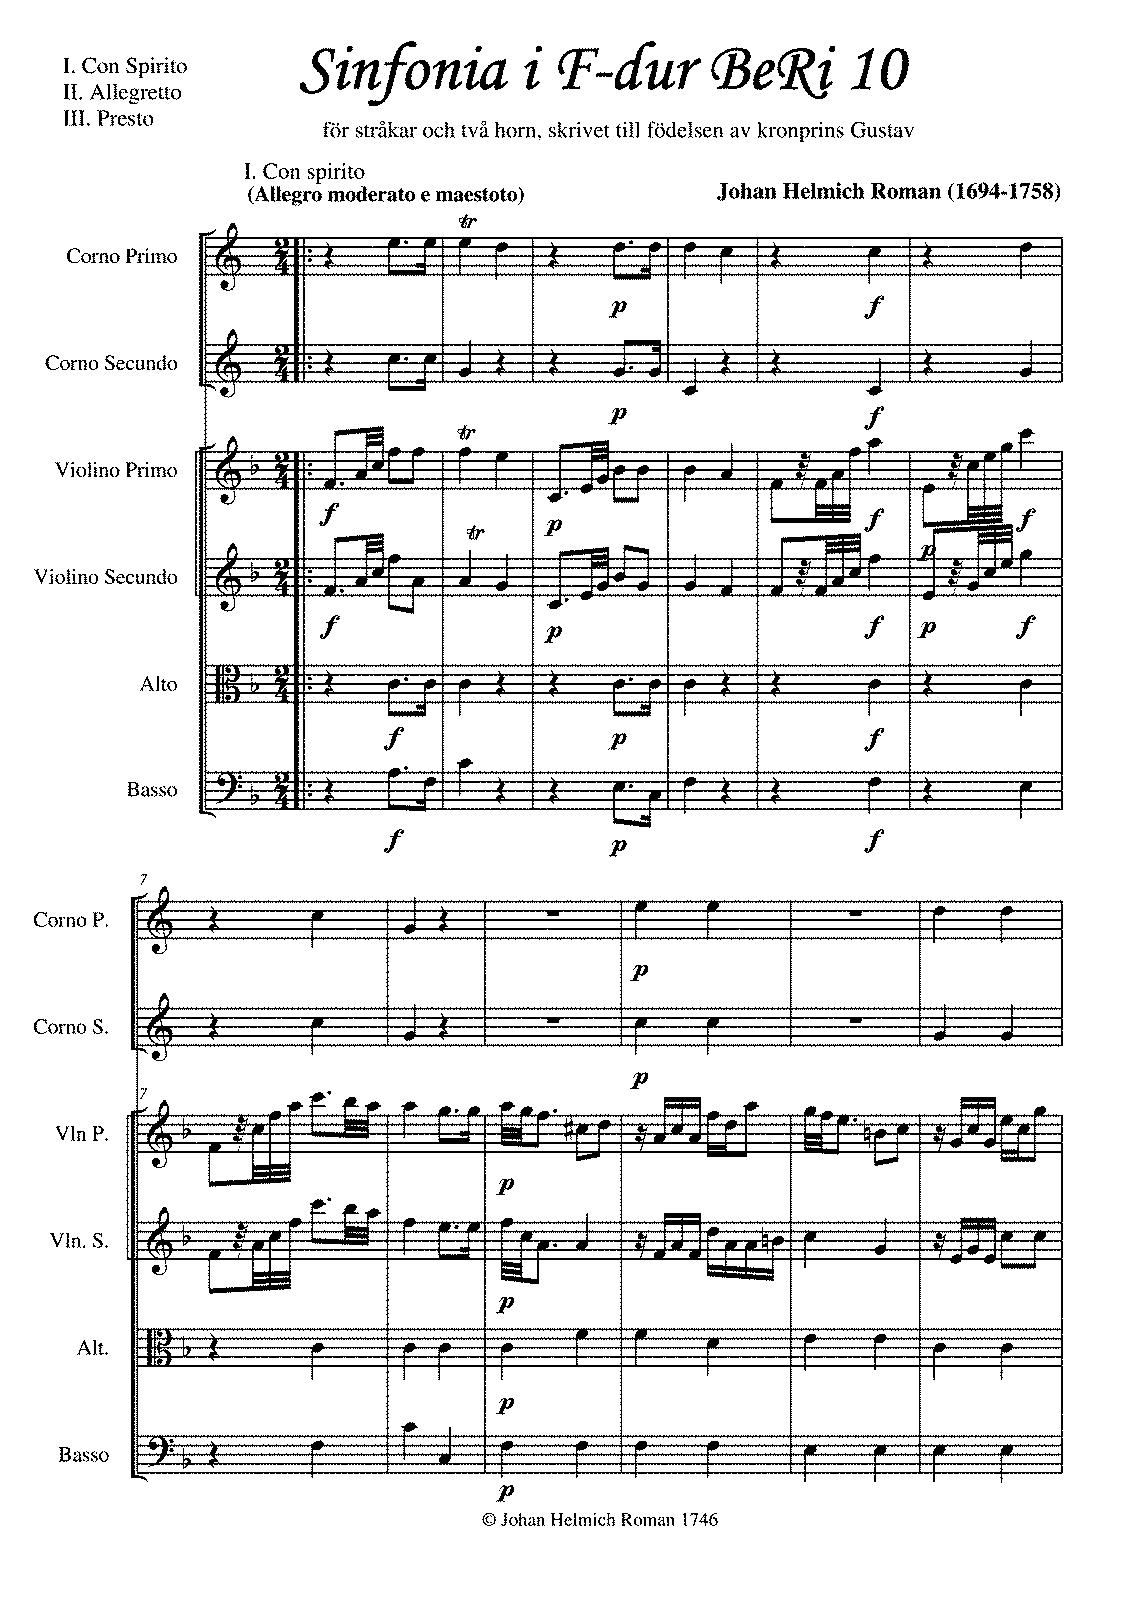 PMLP216276-Johan Helmich Roman - Sinfonia in F-major - BeRi 10 - First movement.pdf